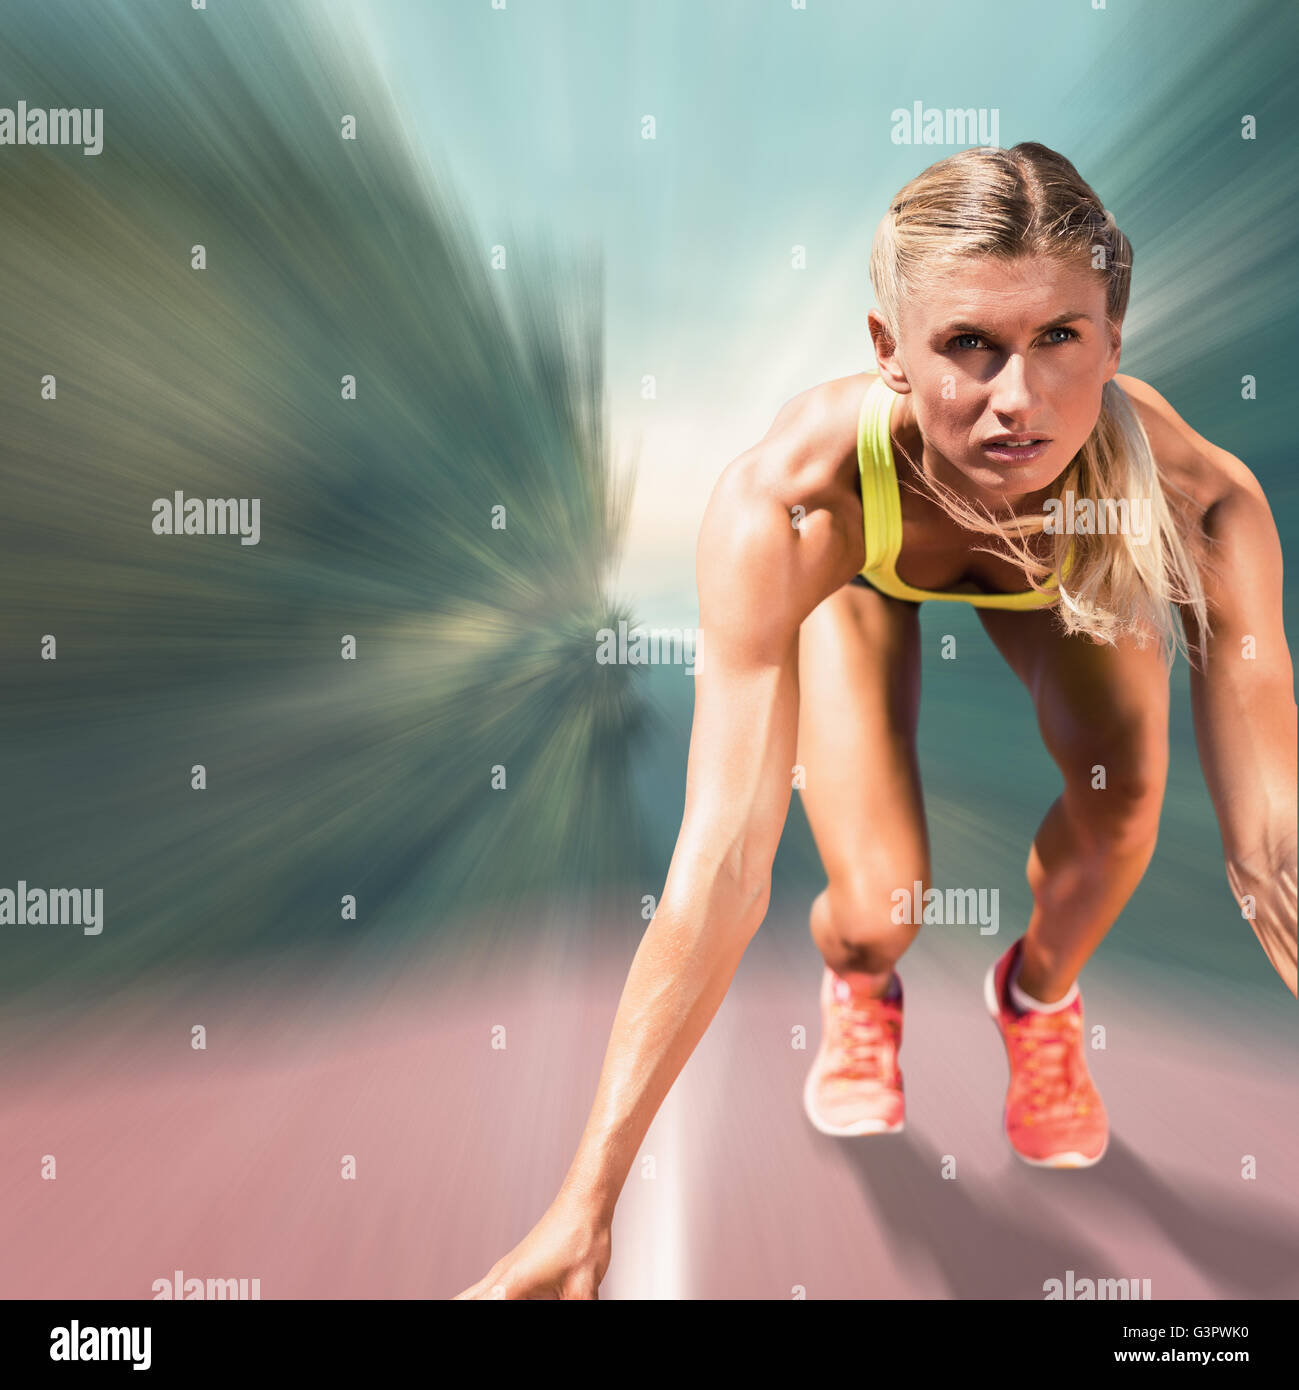 Composite image of sportswoman starting to sprint - Stock Image